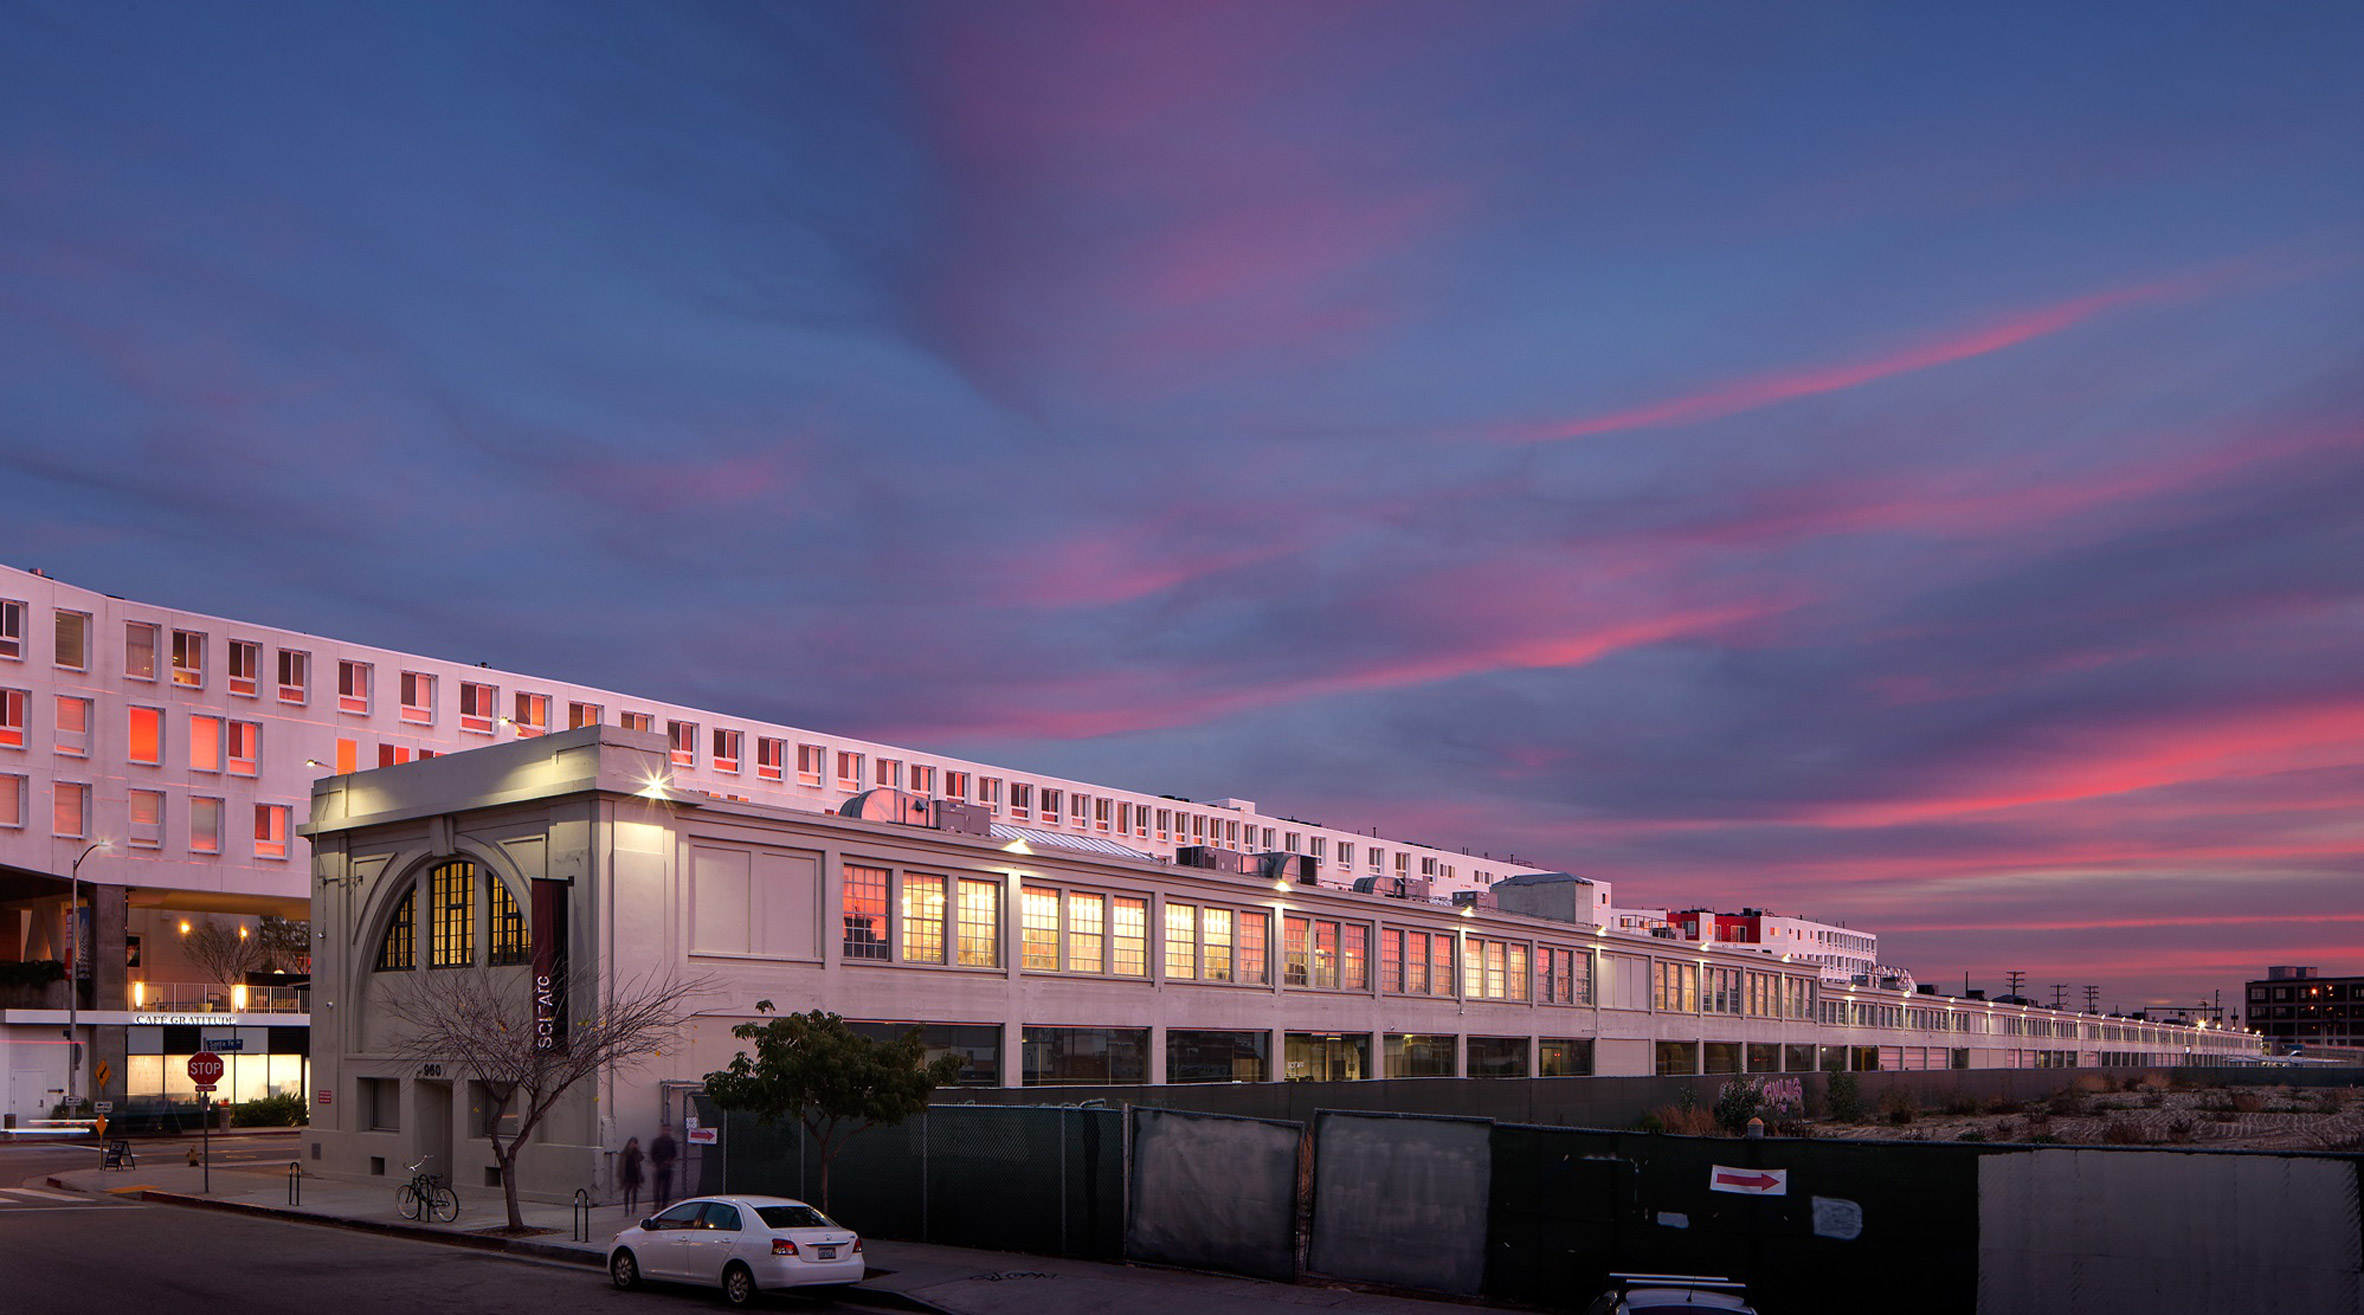 Final call for architecture students to apply for sci arc for Southern california architecture firms